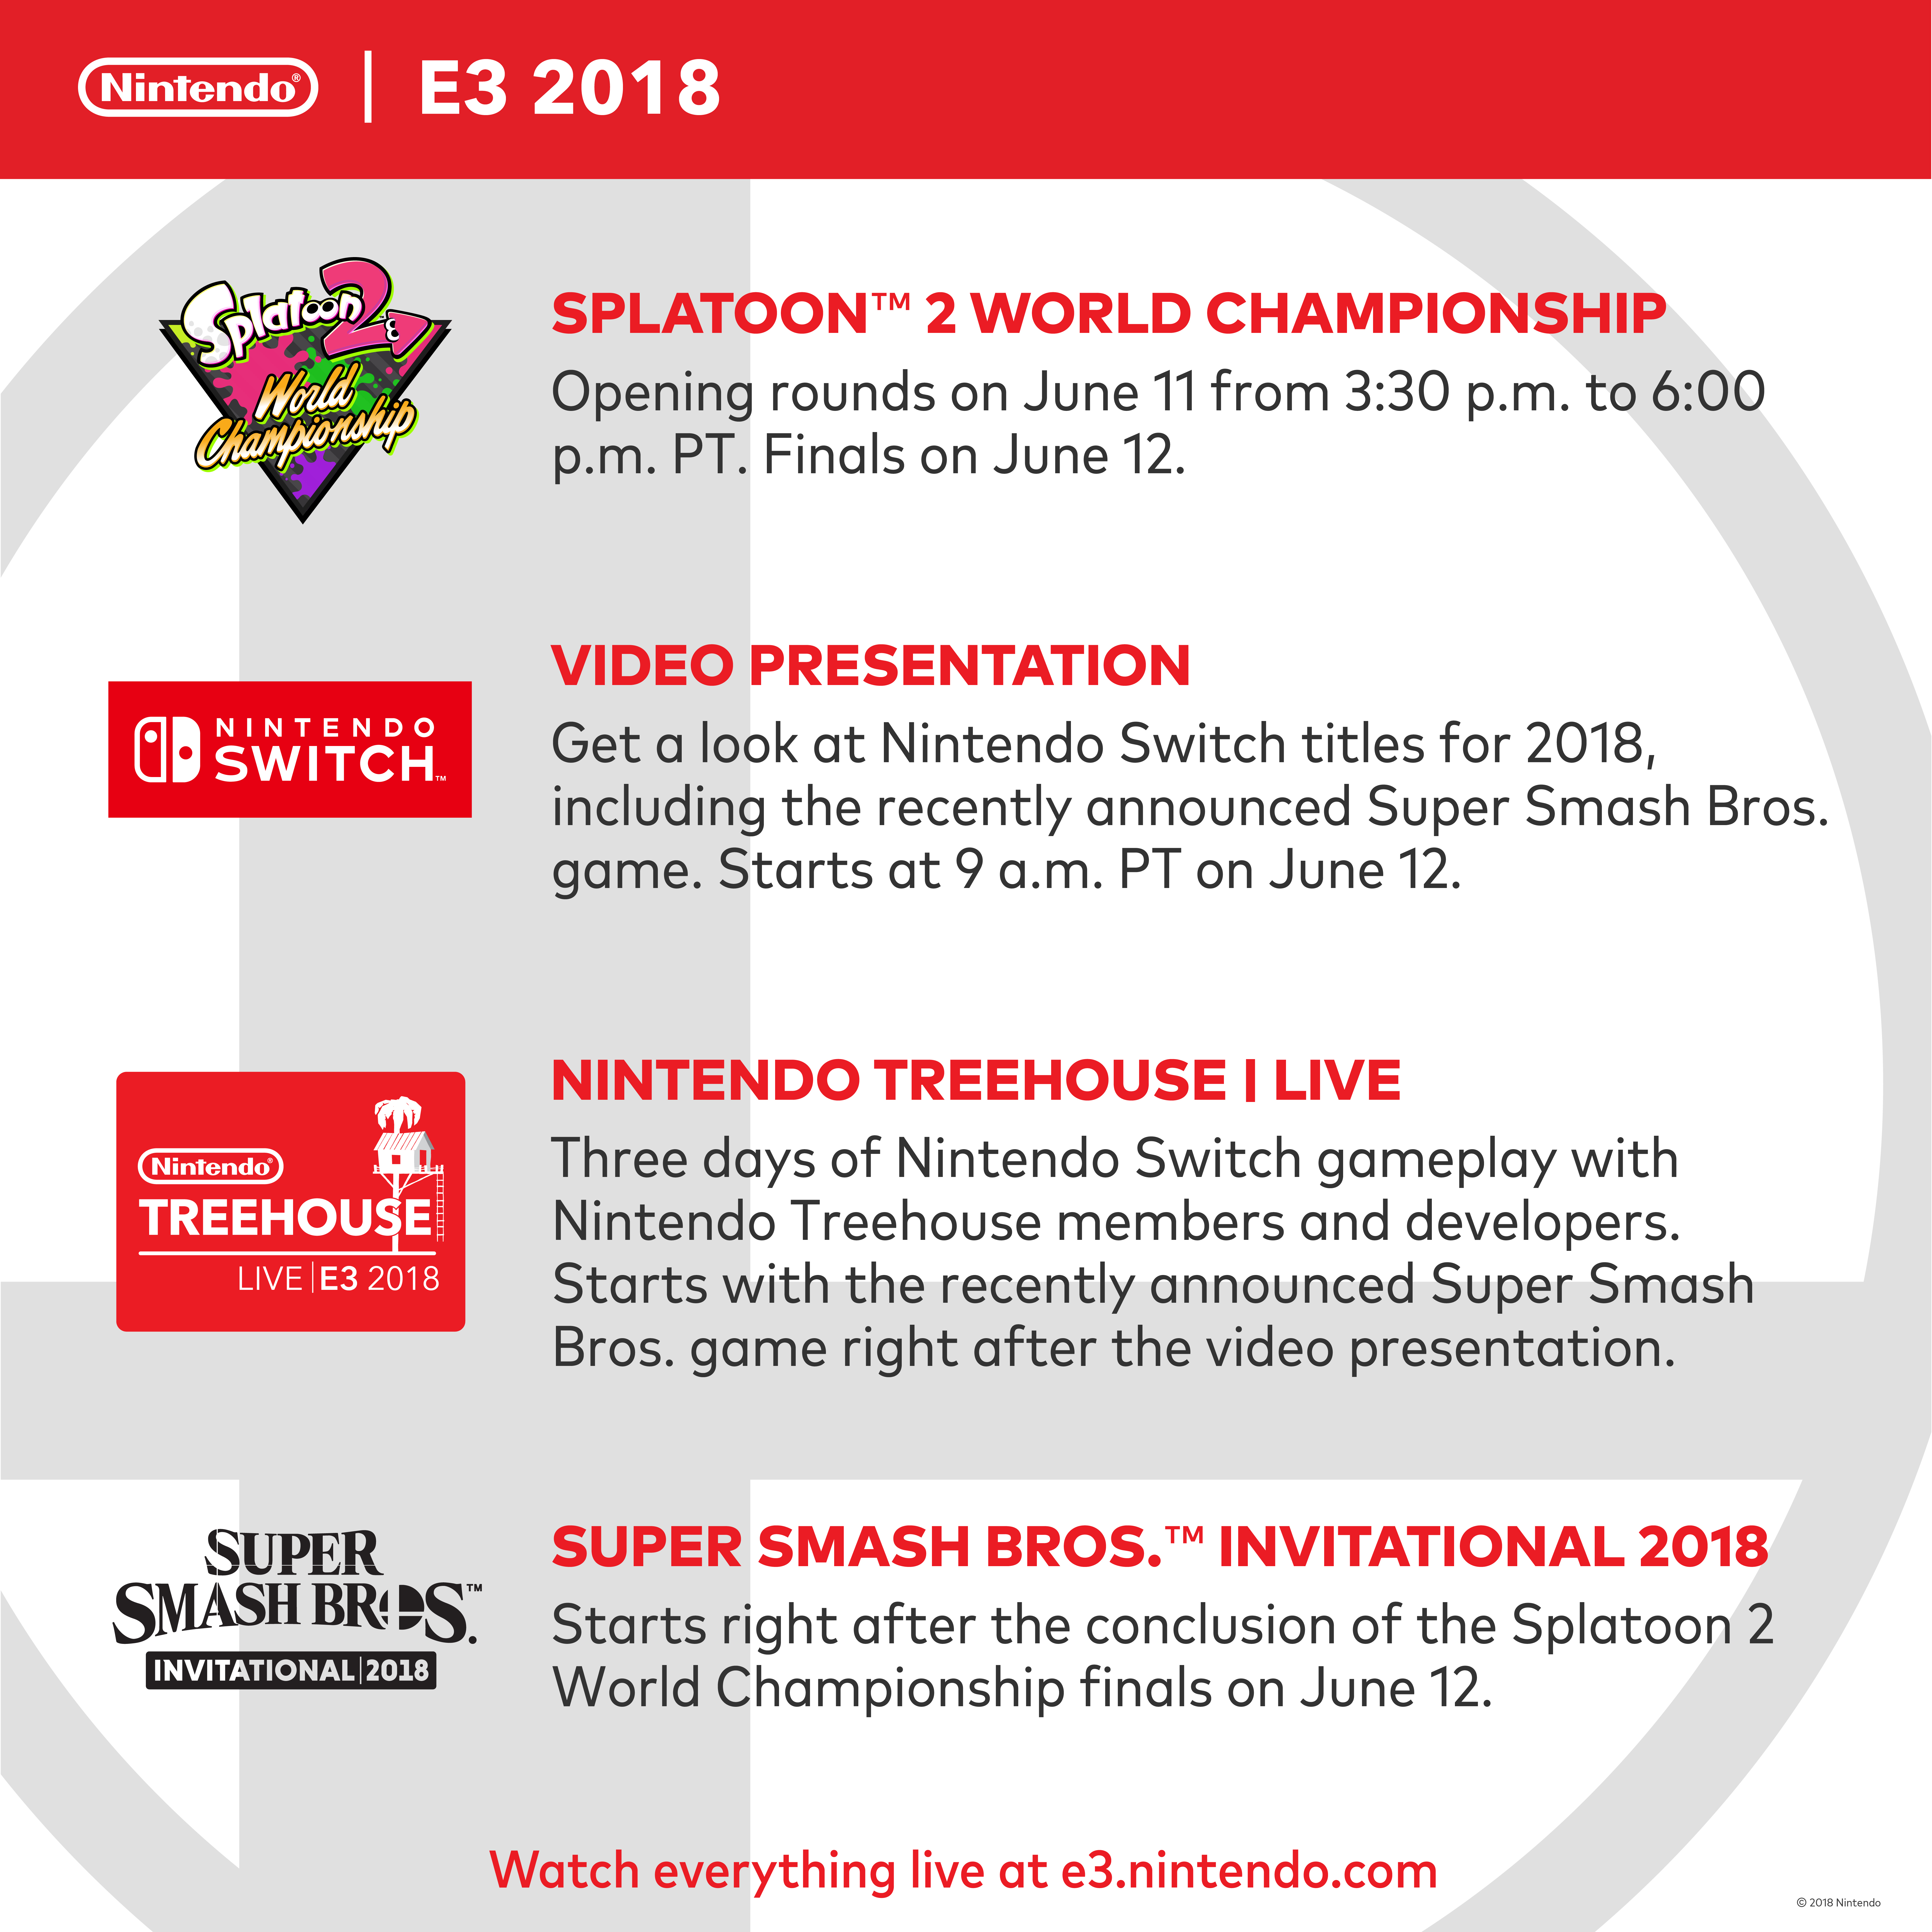 Nintendo Announces E3 2018 Plans and Livestreams; Super Smash Bros